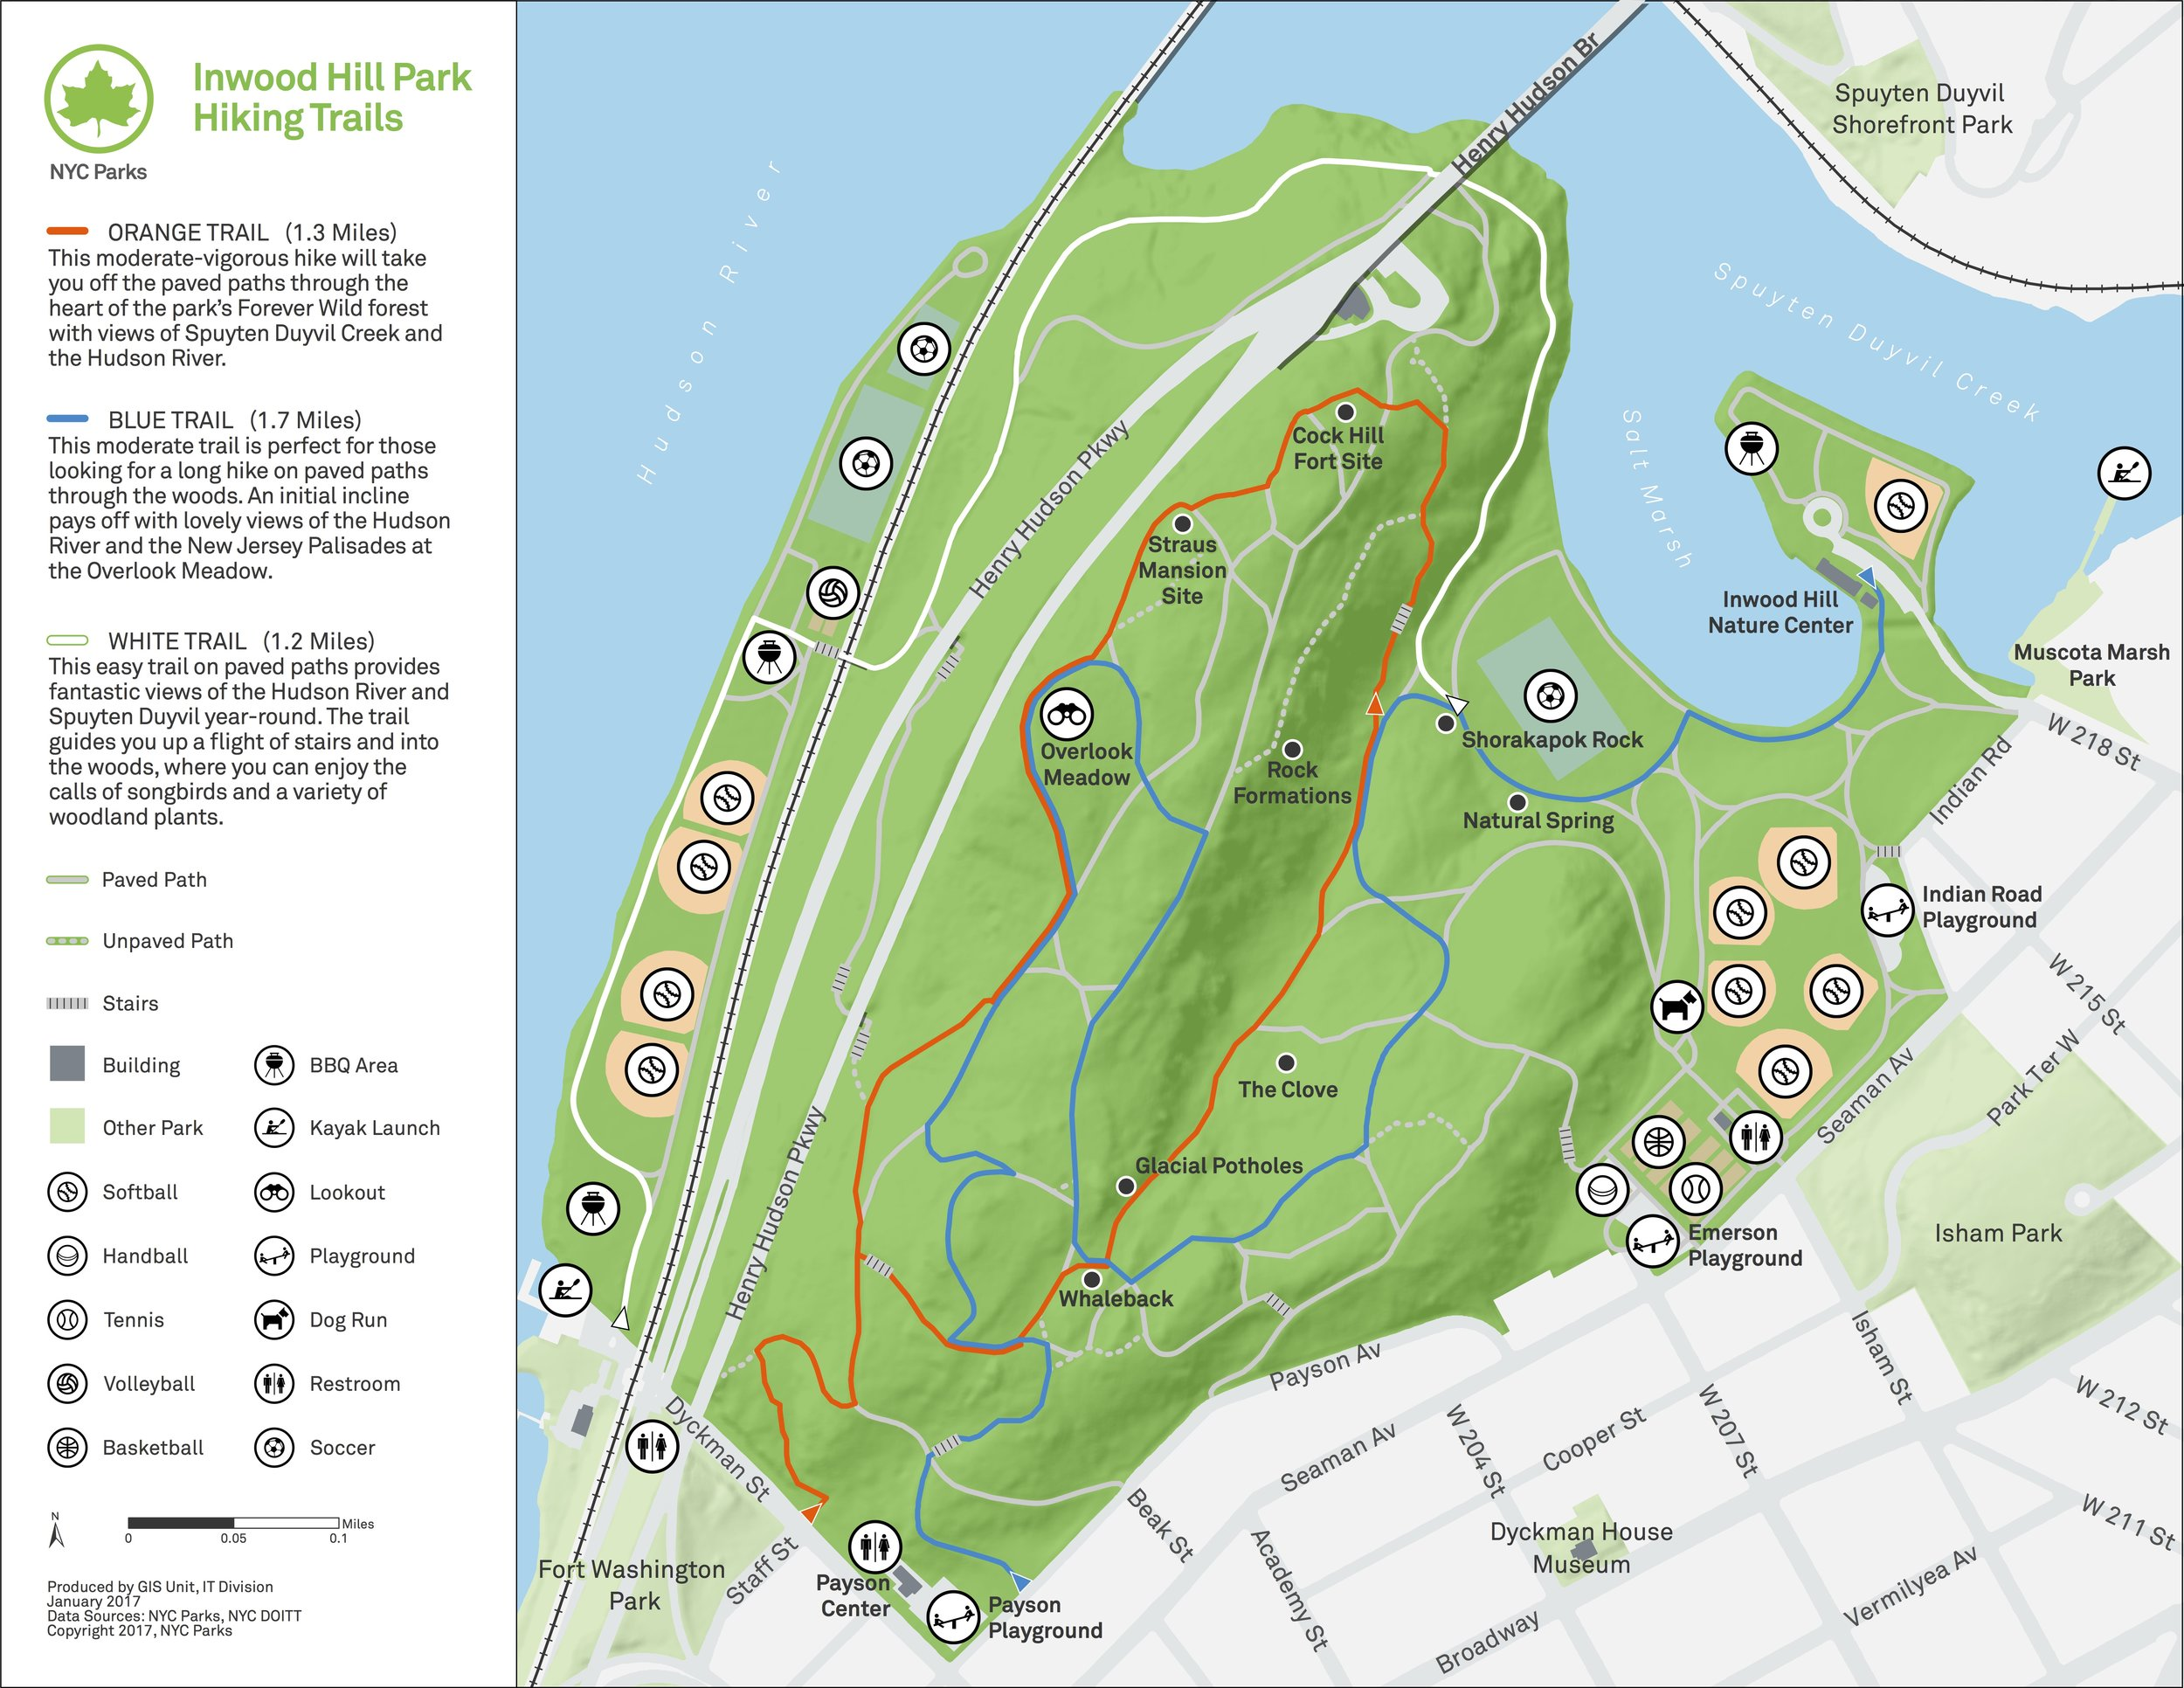 Map by NYC Parks & Rec